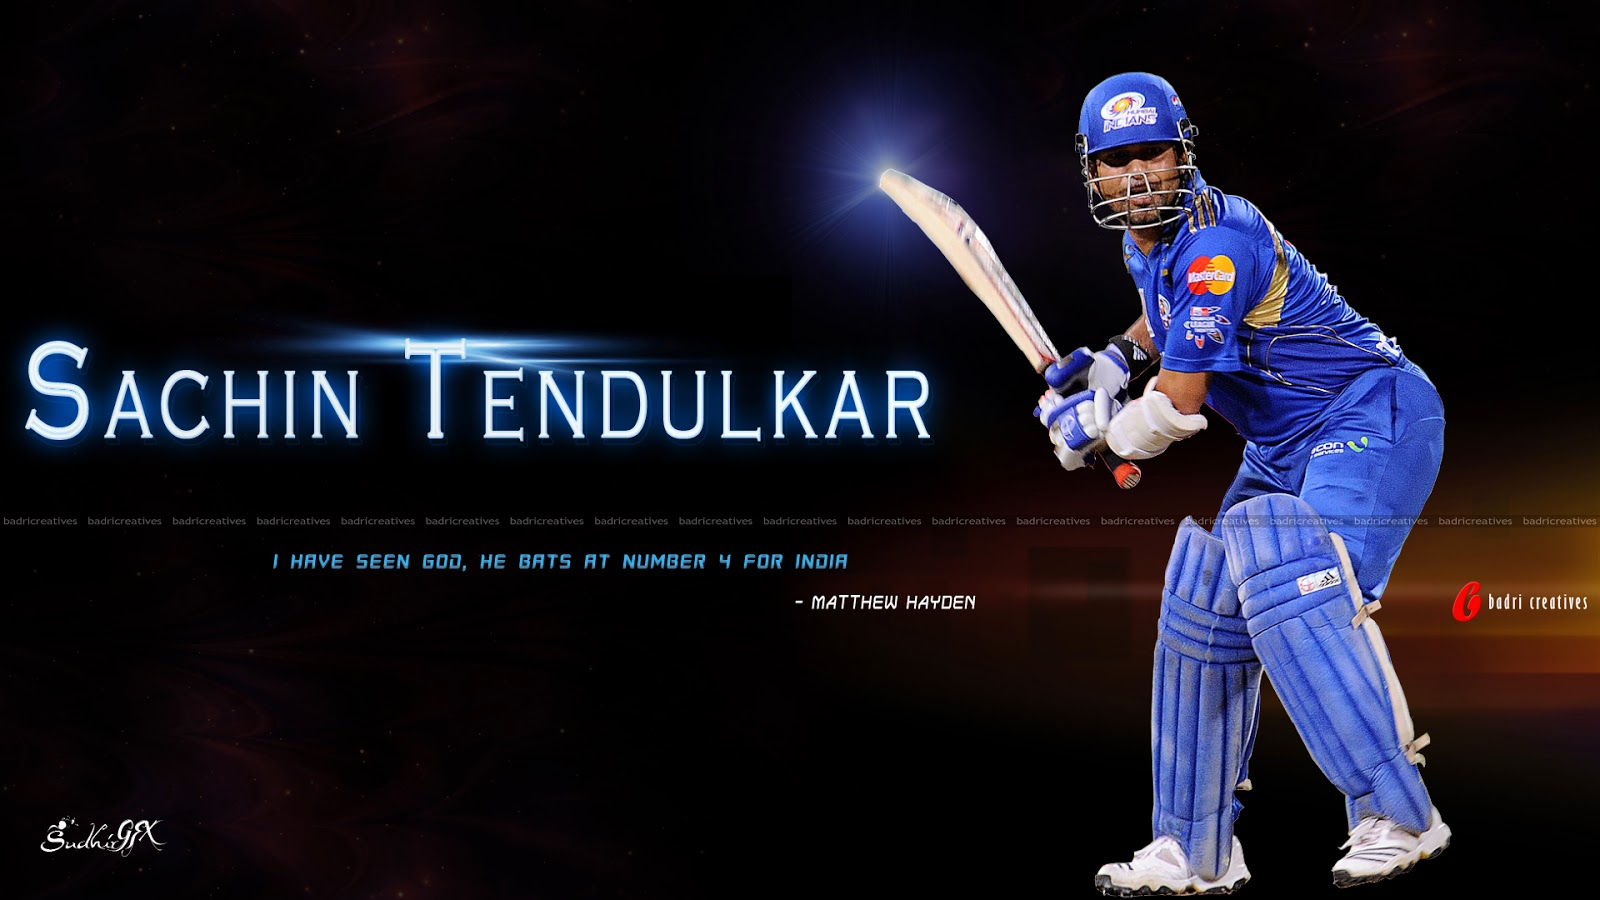 sachin tendulkar test match hd wallpaper,pictures,photos,pics 1600x900